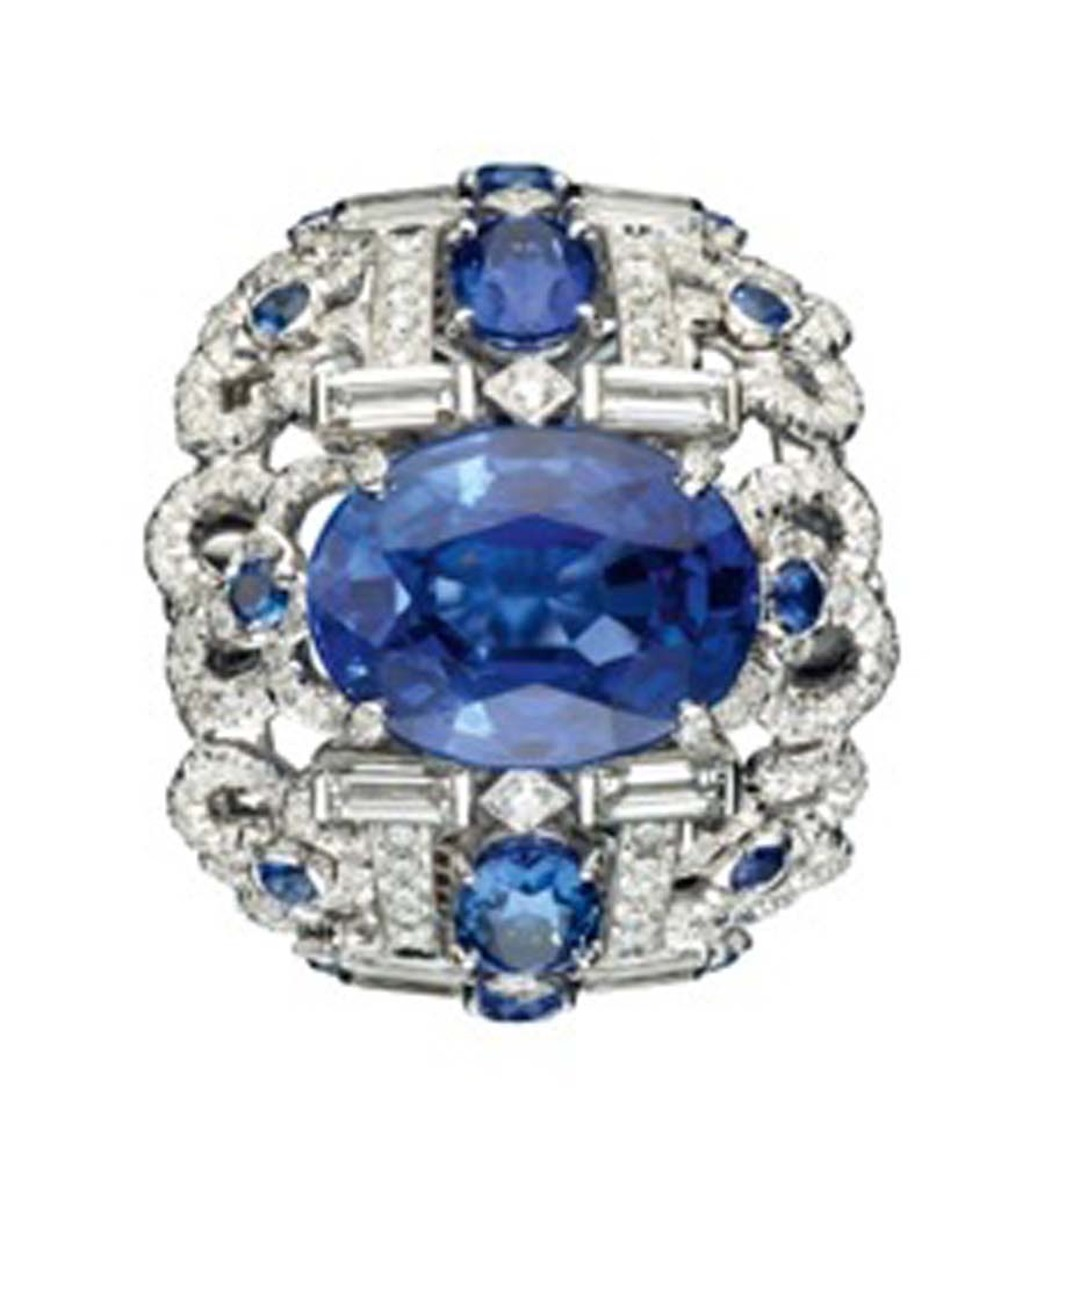 Chaumet white gold Hortensia ring with diamonds, sapphires and set with a centre oval-cut sapphire.